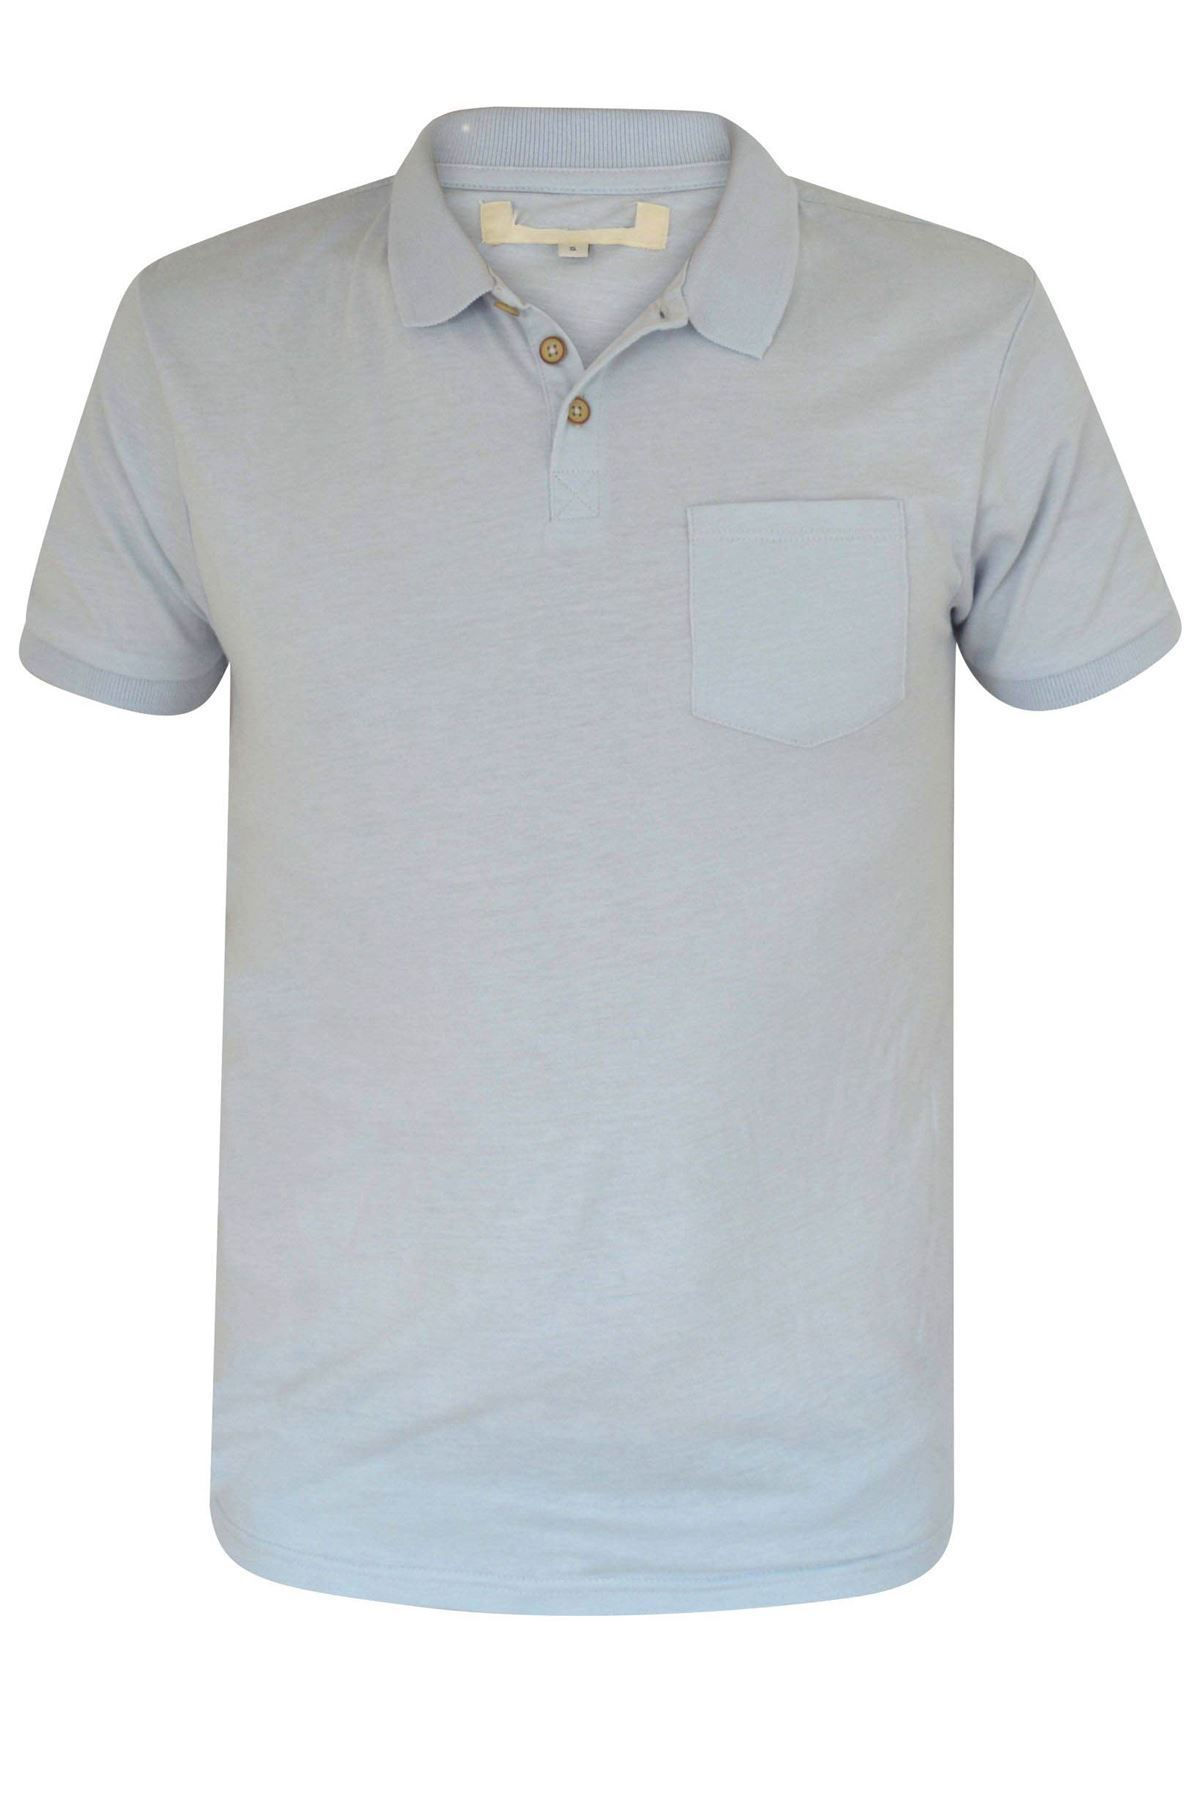 H-amp-M-Mens-Cotton-Polo-Shirts-SALE-Was-22 thumbnail 12